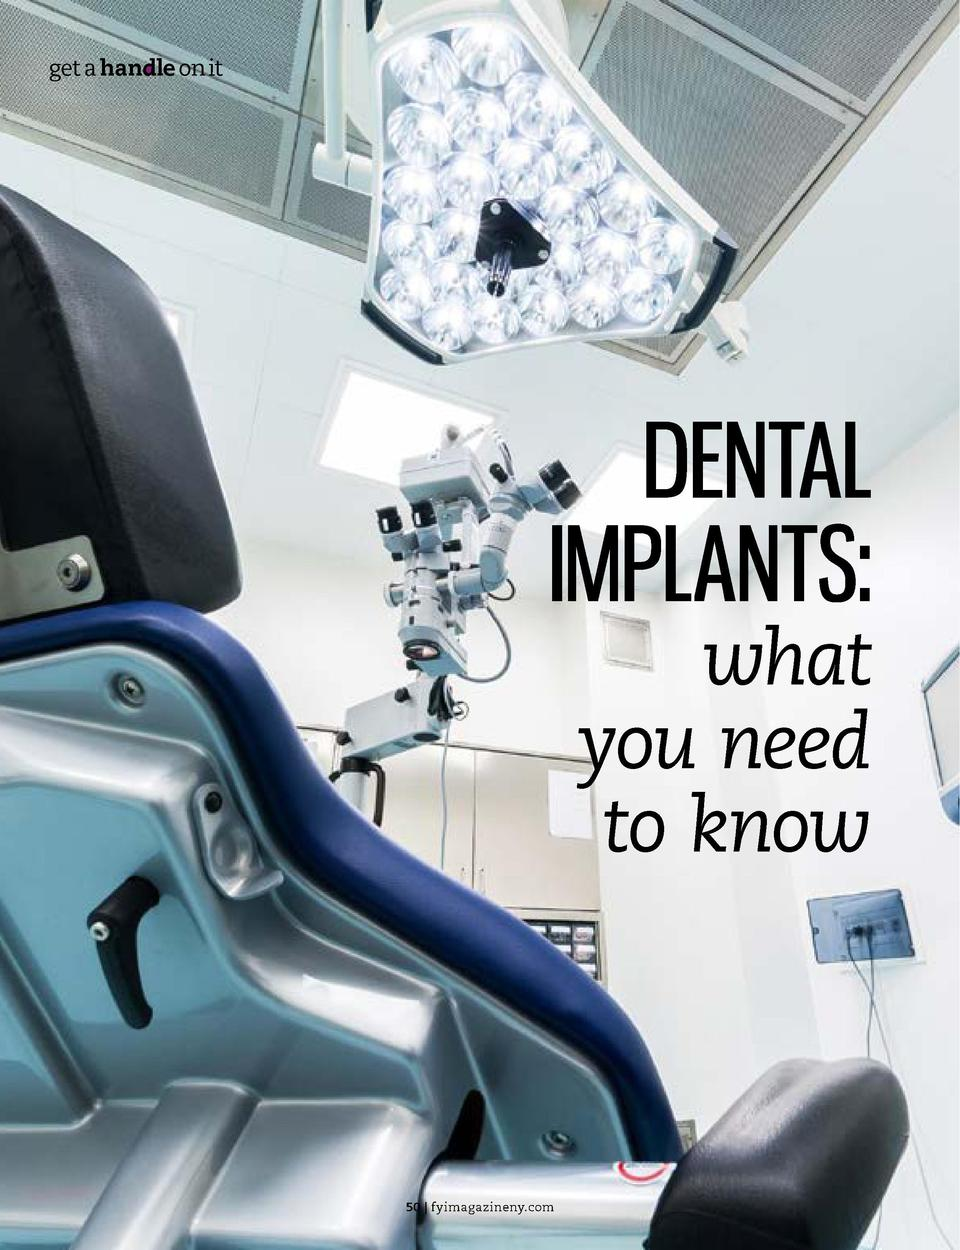 FEEL YOUR BEST  get a handle on it  I  DENTAL IMPLANTS  what you need to know  50   fyimagazineny.com  mplants, bone graft...